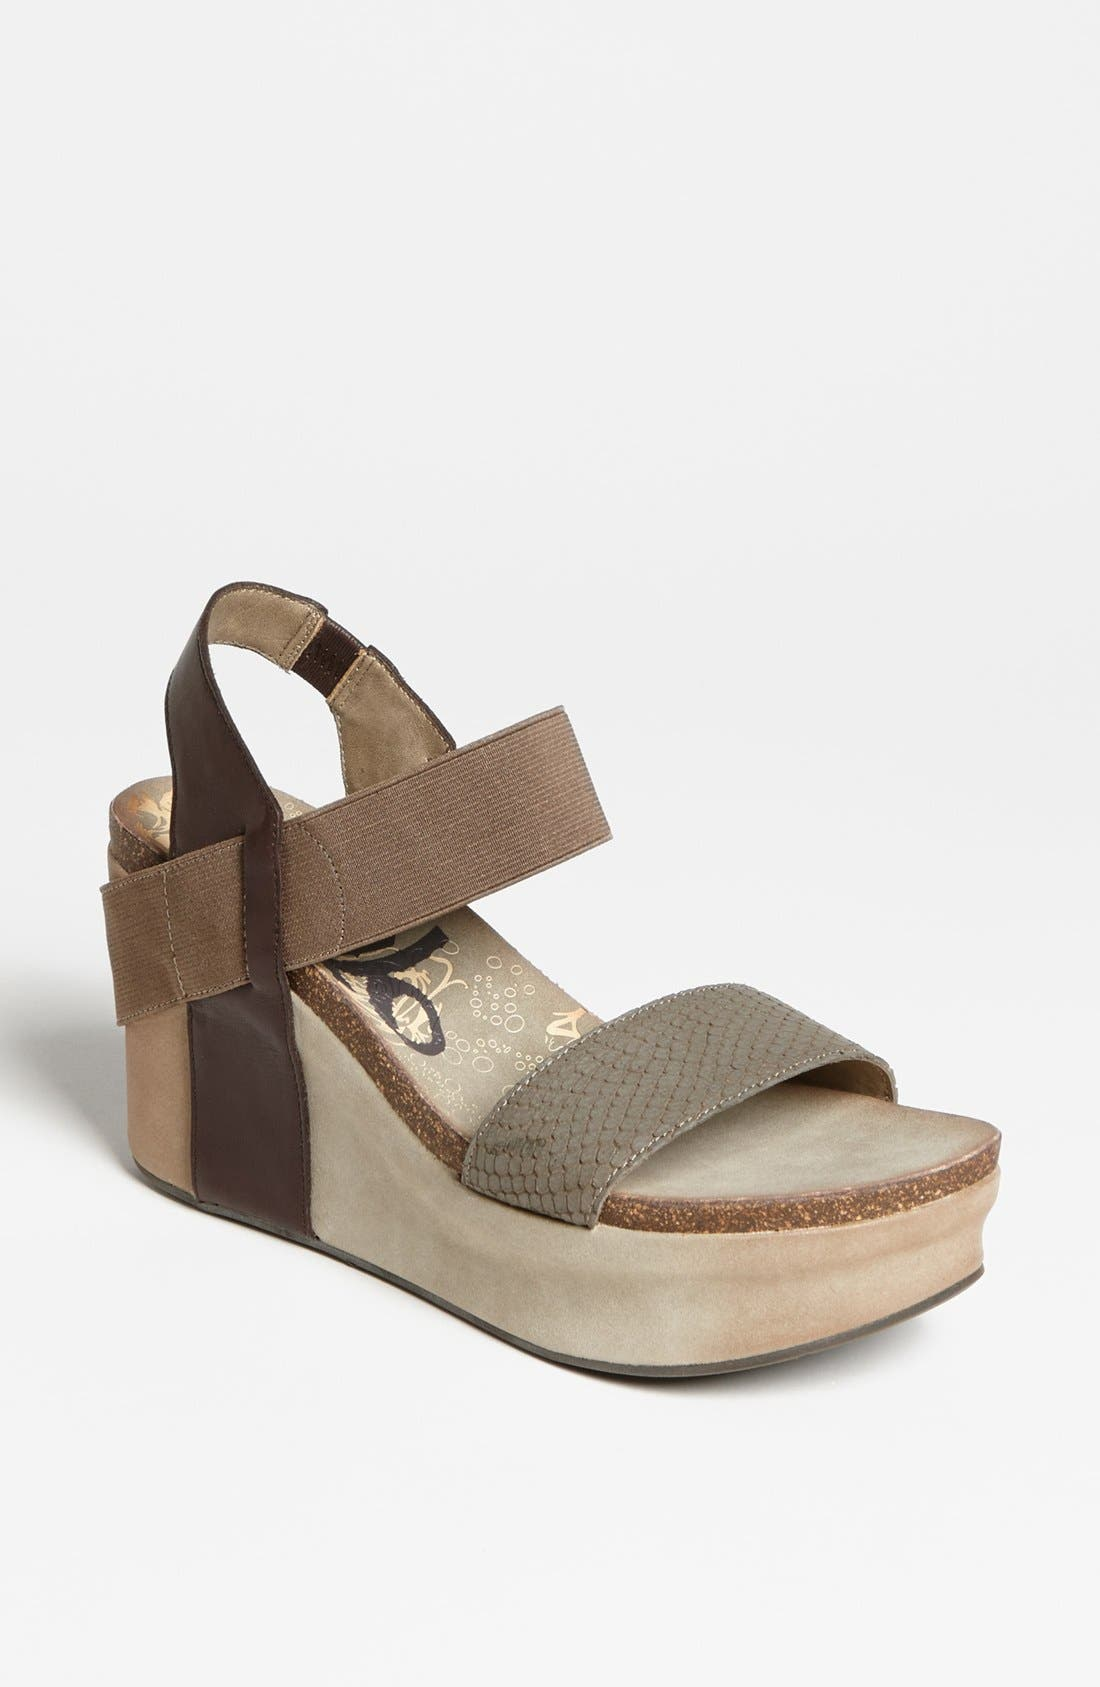 'Bushnell' Wedge Sandal,                             Main thumbnail 10, color,